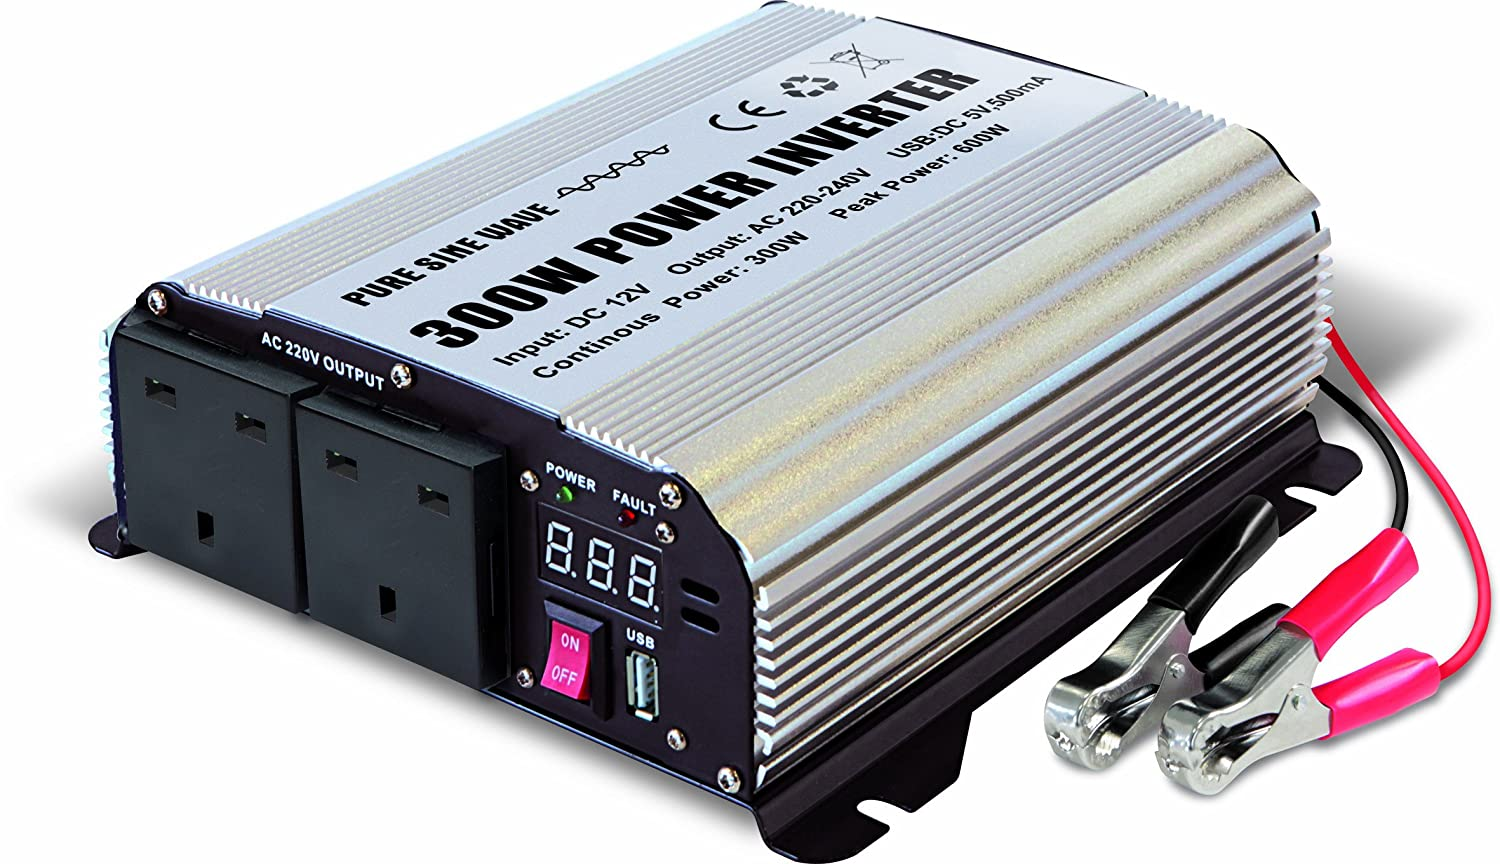 GYS PSW 8300 12-240V 300W Power Inverter with Two 3-Pin Plug Socket and USB Port